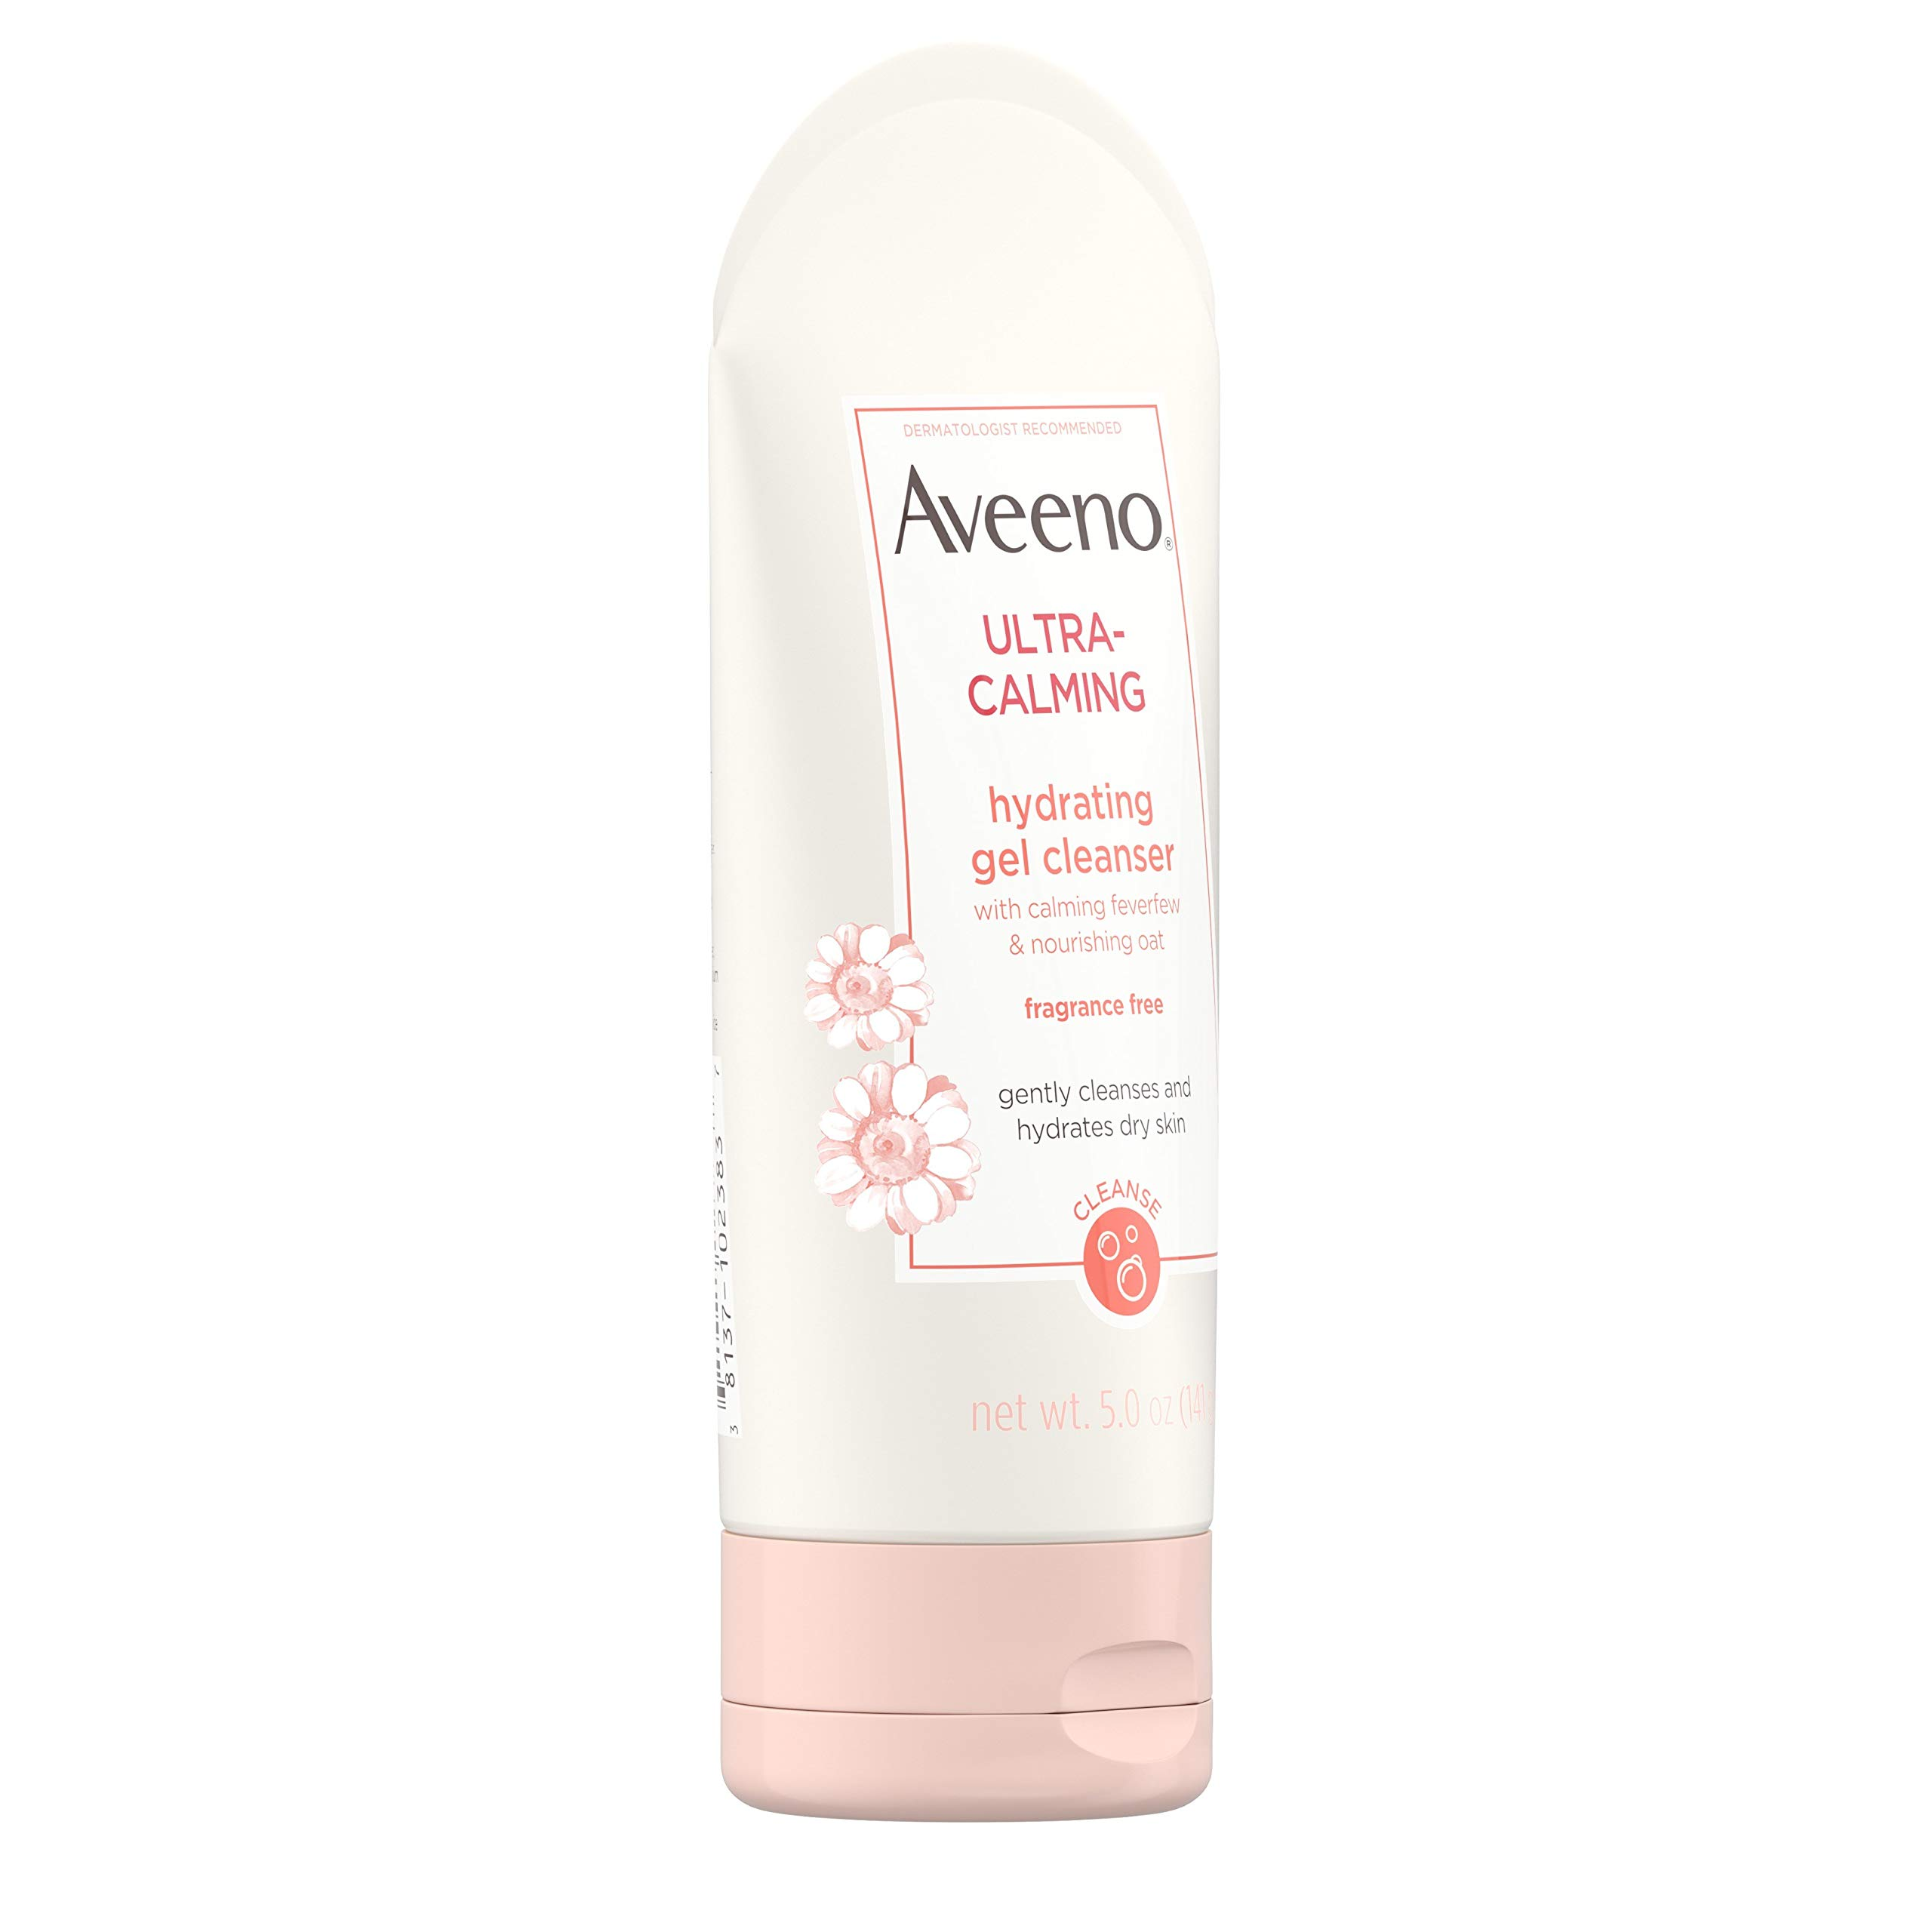 Aveeno Ultra-Calming Hydrating Gel Facial Cleanser with Calming Feverfew and Nourishing Oat, Face Wash for Dry and Sensitive Skin, Fragrance-Free and Non-Comedogenic, 5 oz